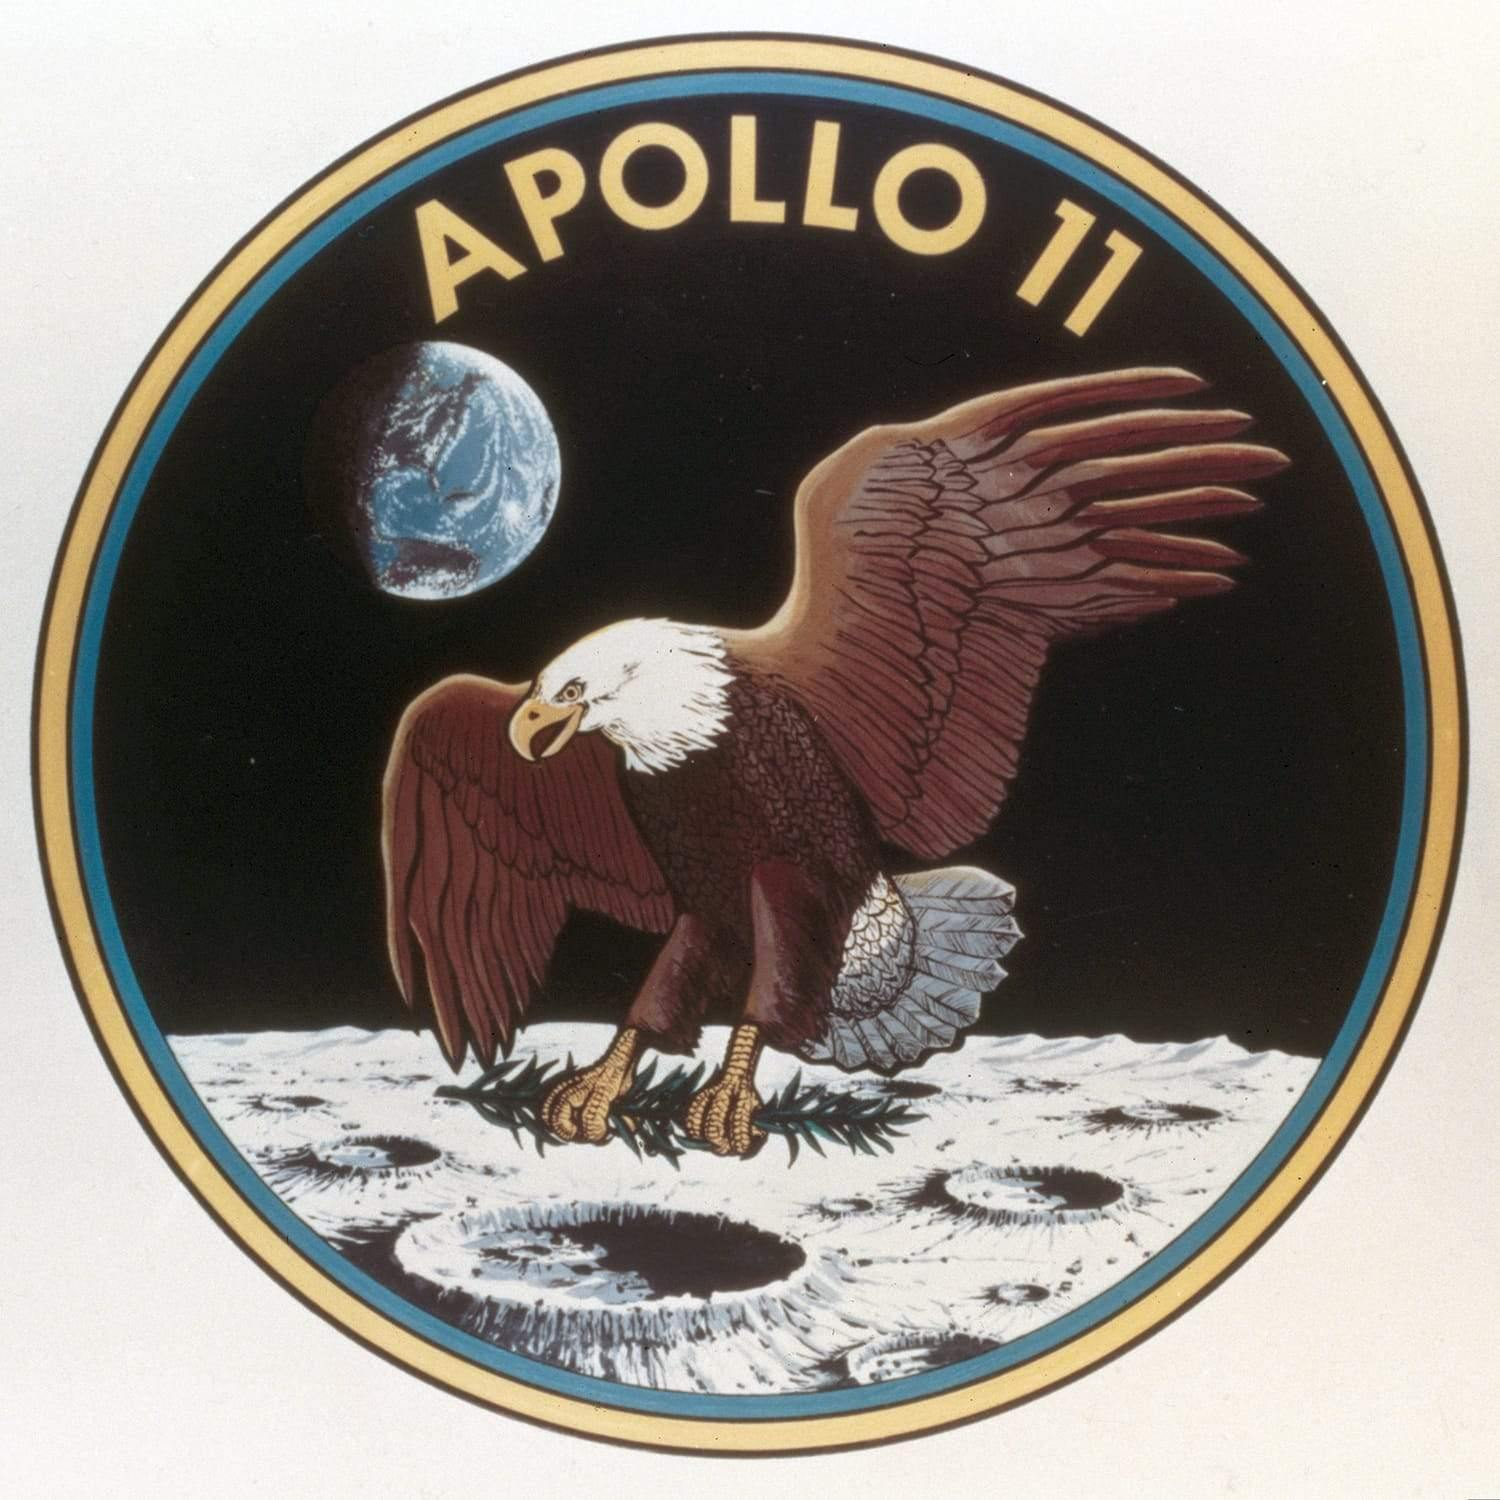 Science Museum Apollo 11 Patch Poster